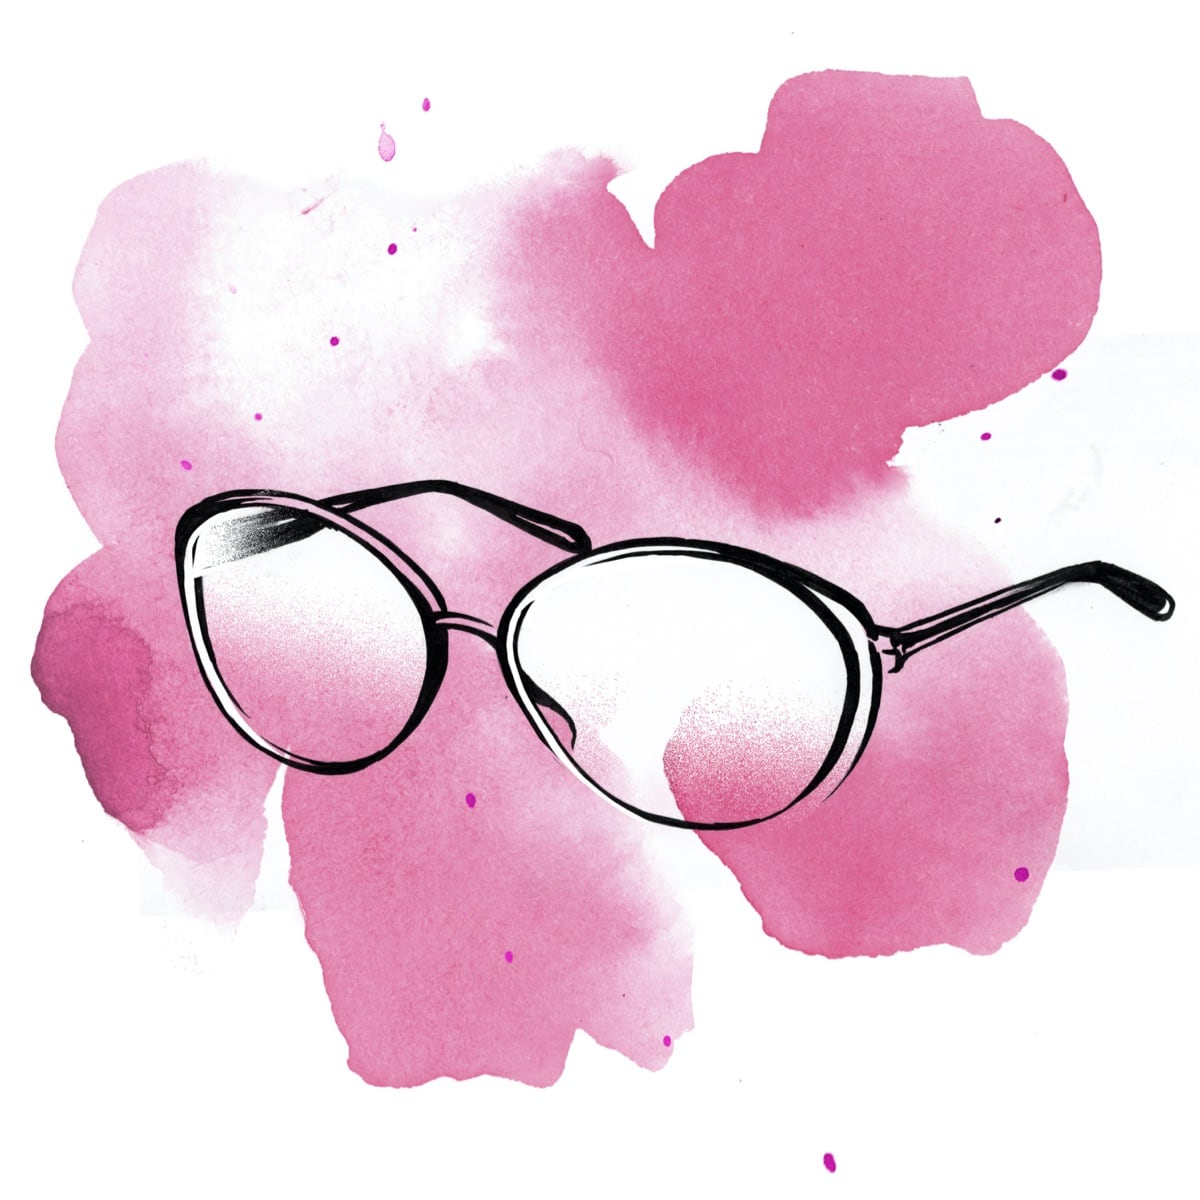 A whimsical watercolor illustration of glasses à la Miranda Priestly, Meryl Streep's iconic character from The Devil Wears Prada.